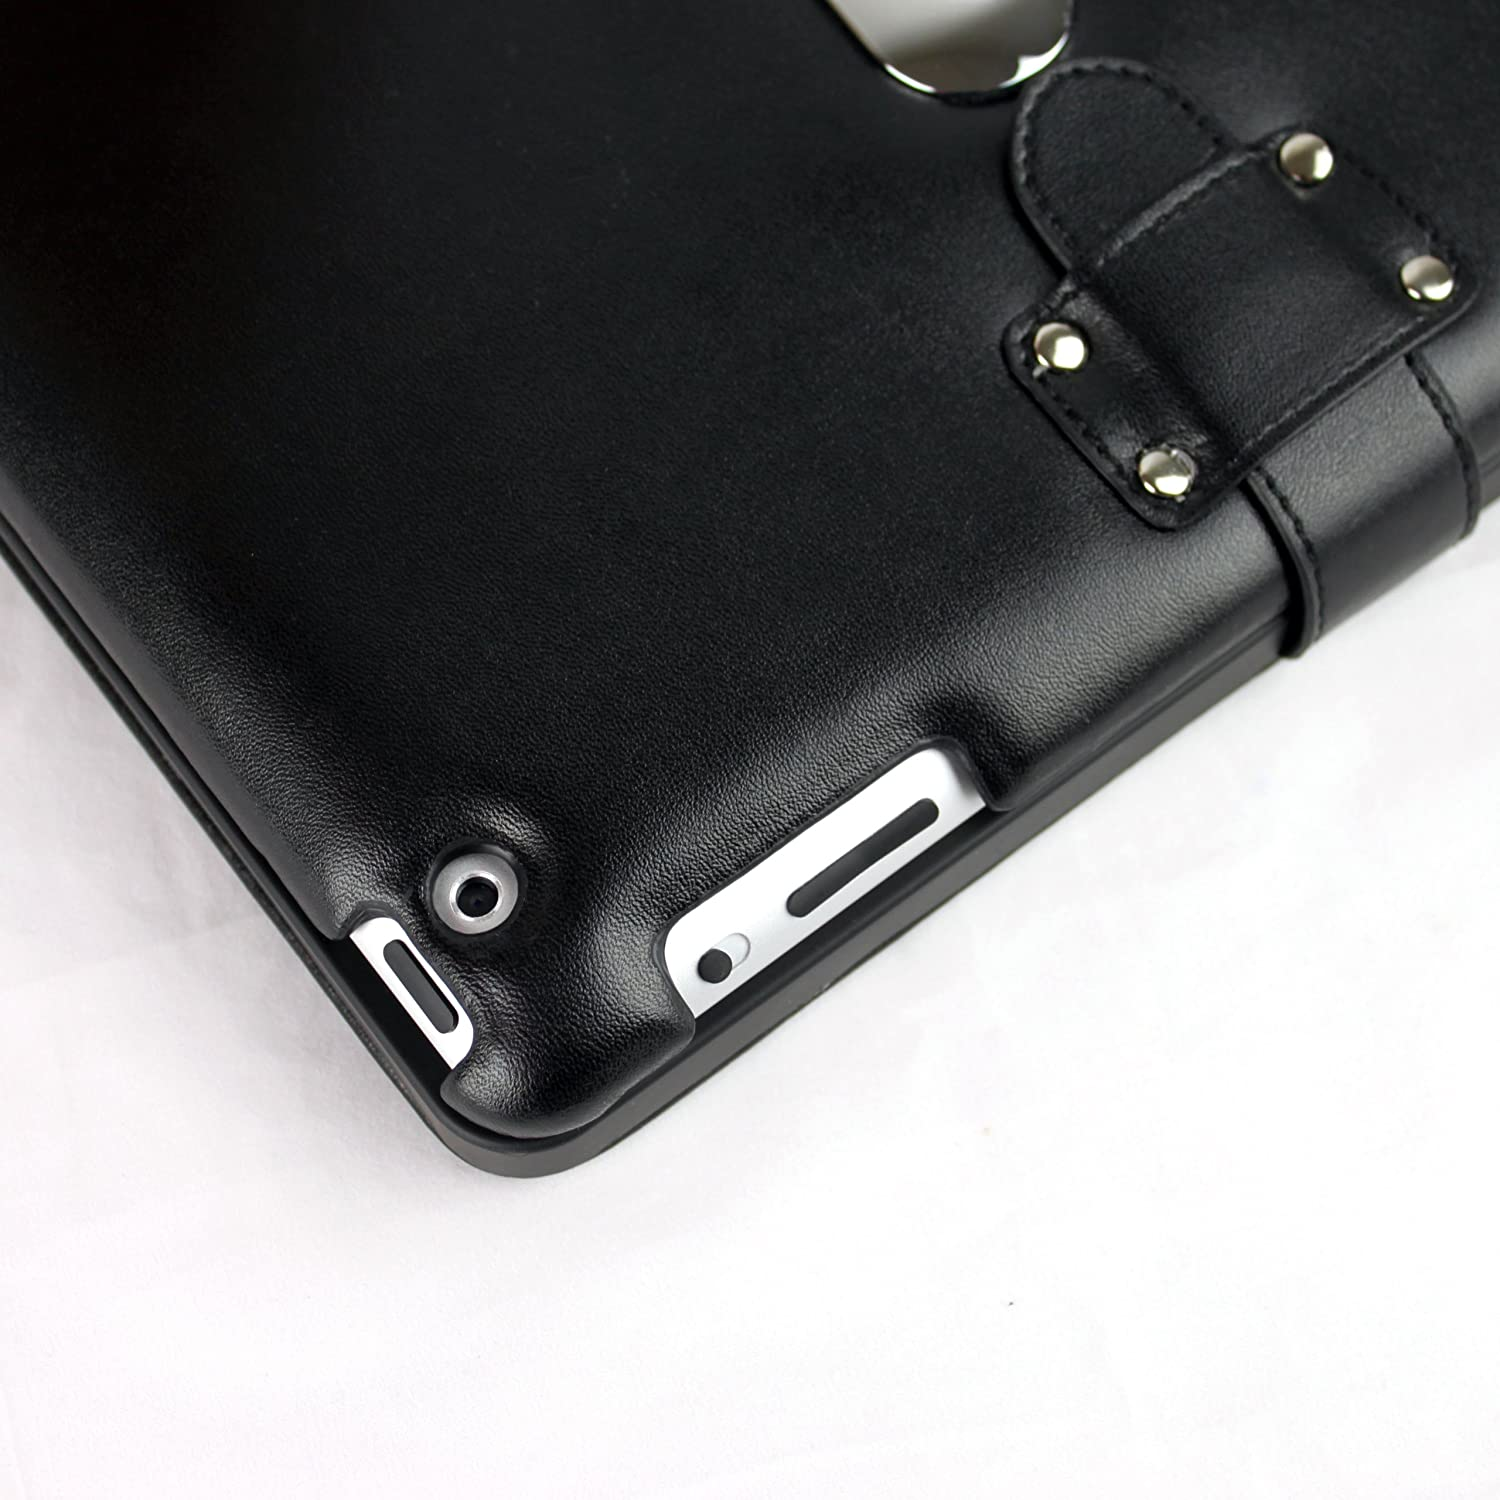 iPad 2 leather case with keyboard